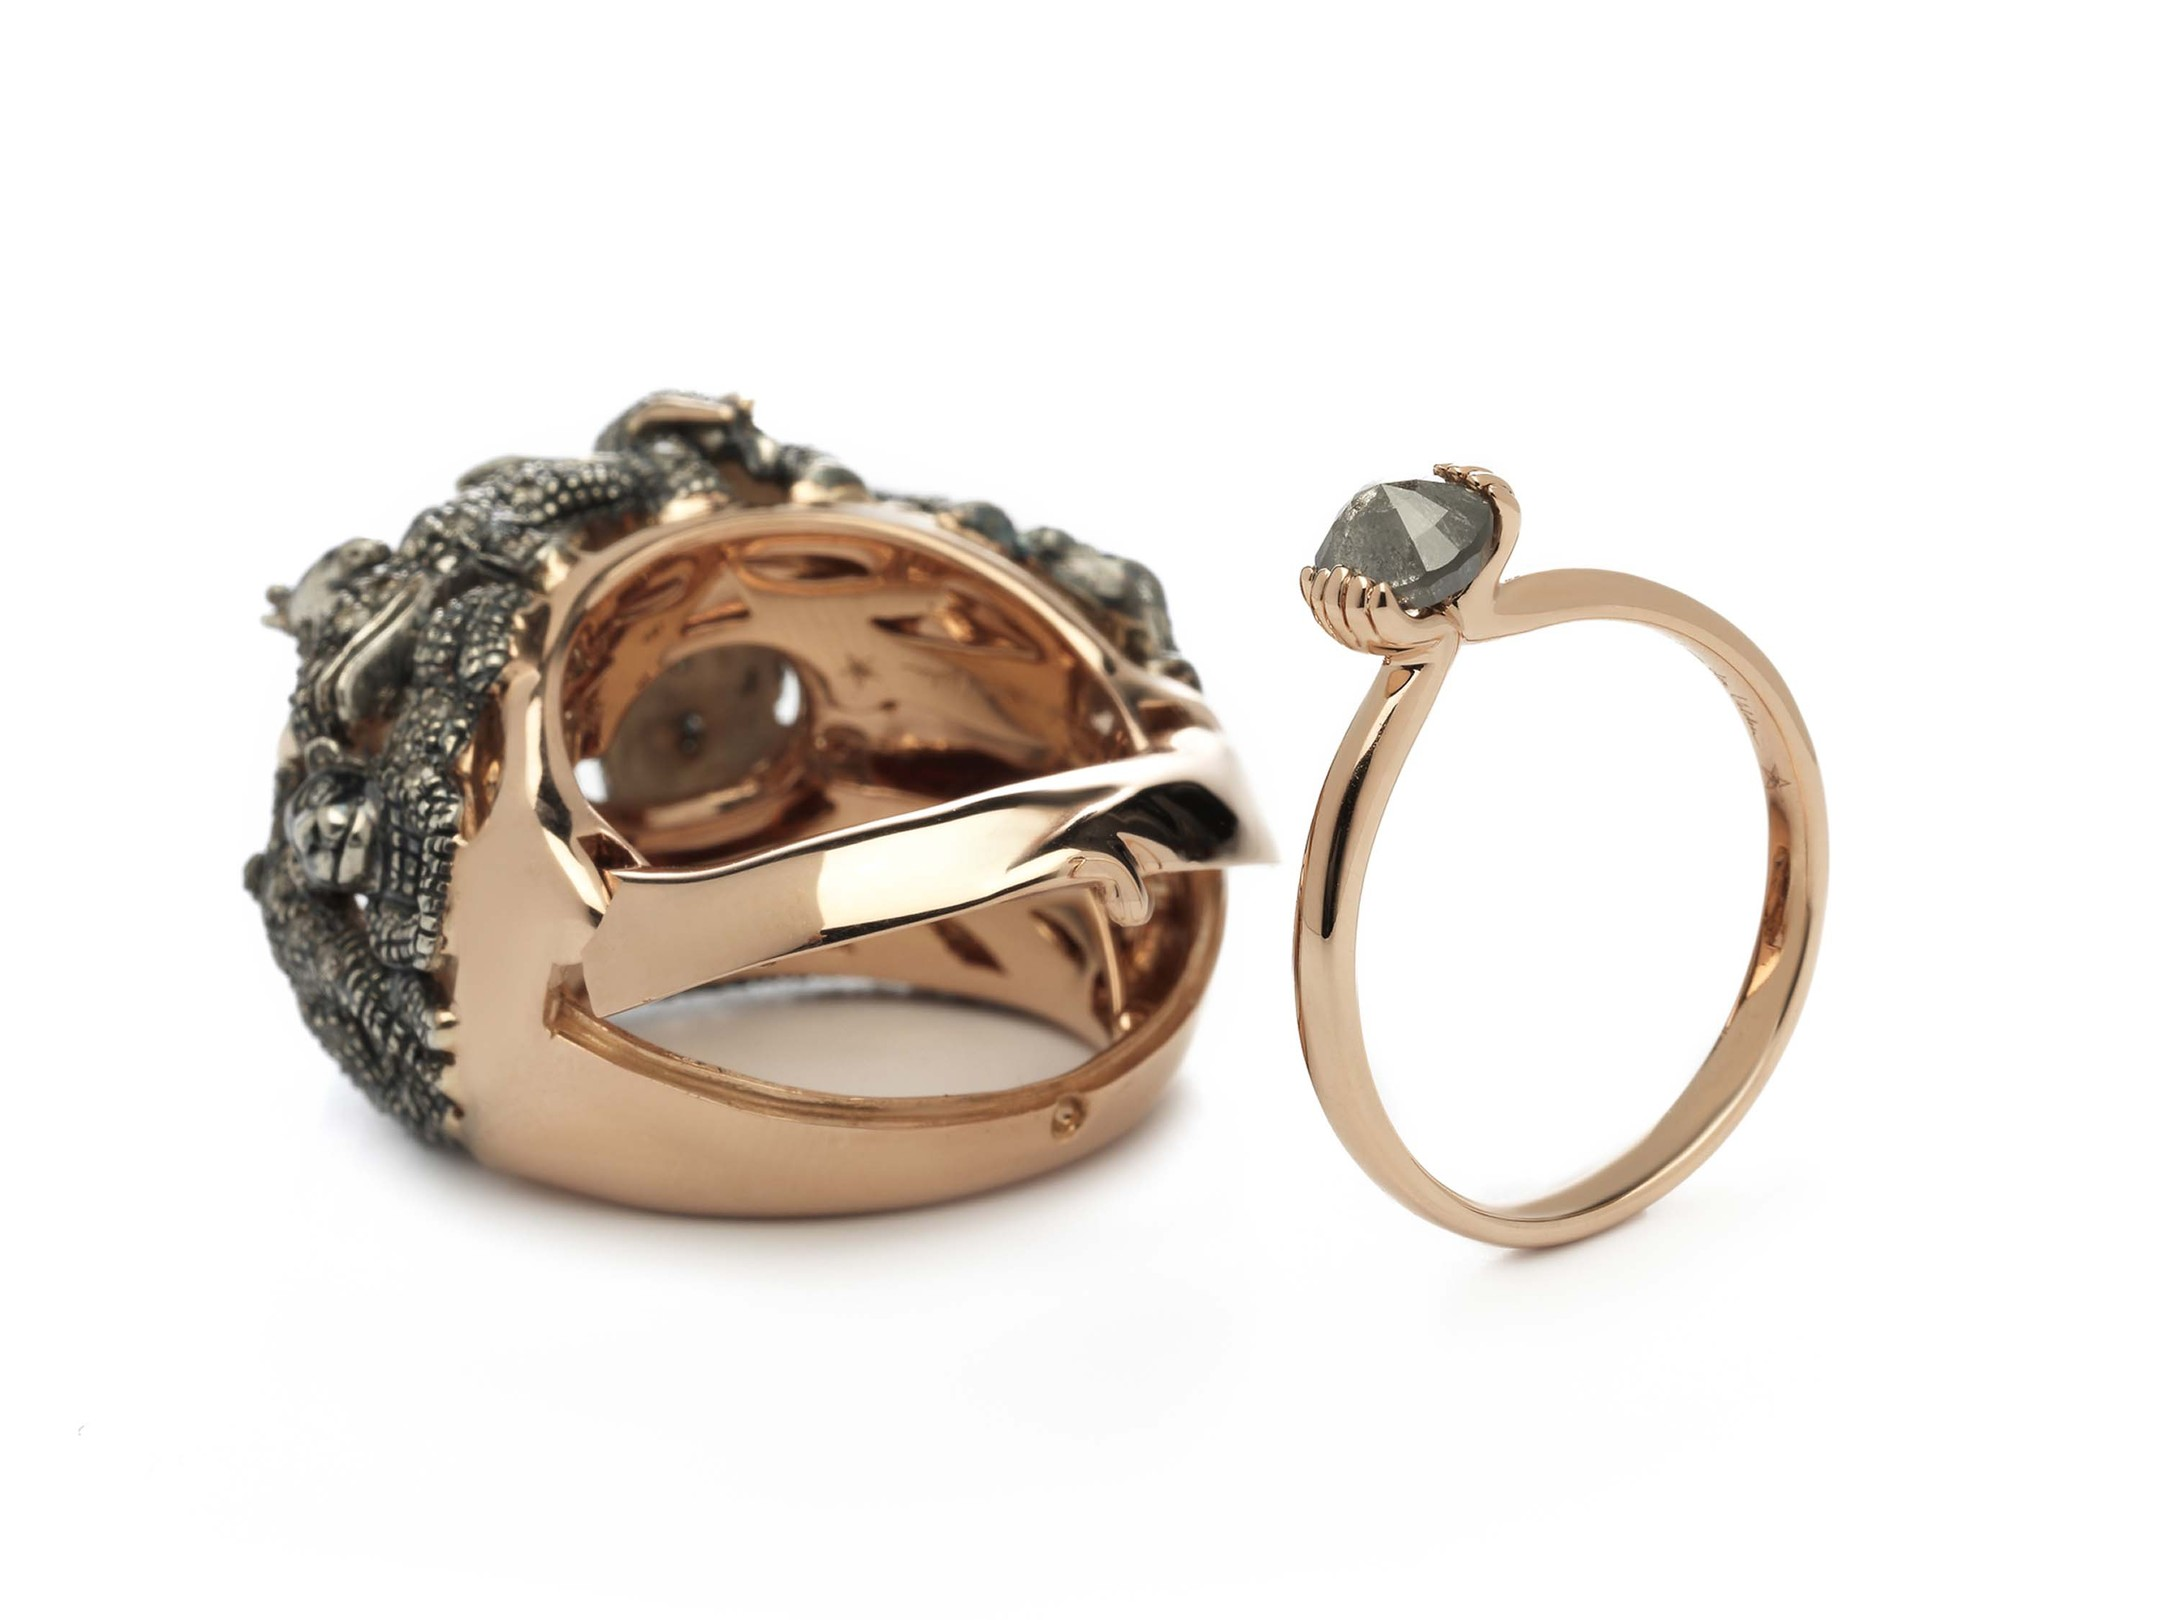 "Bibi van der Velden's ""ring within a ring"", which will be shown for the first time at The Couture Show 2014. The main ring is decorated with miniature elephants, giraffes, lions and rhinos, while the hidden ring depicts hands clasping a brown diamond"